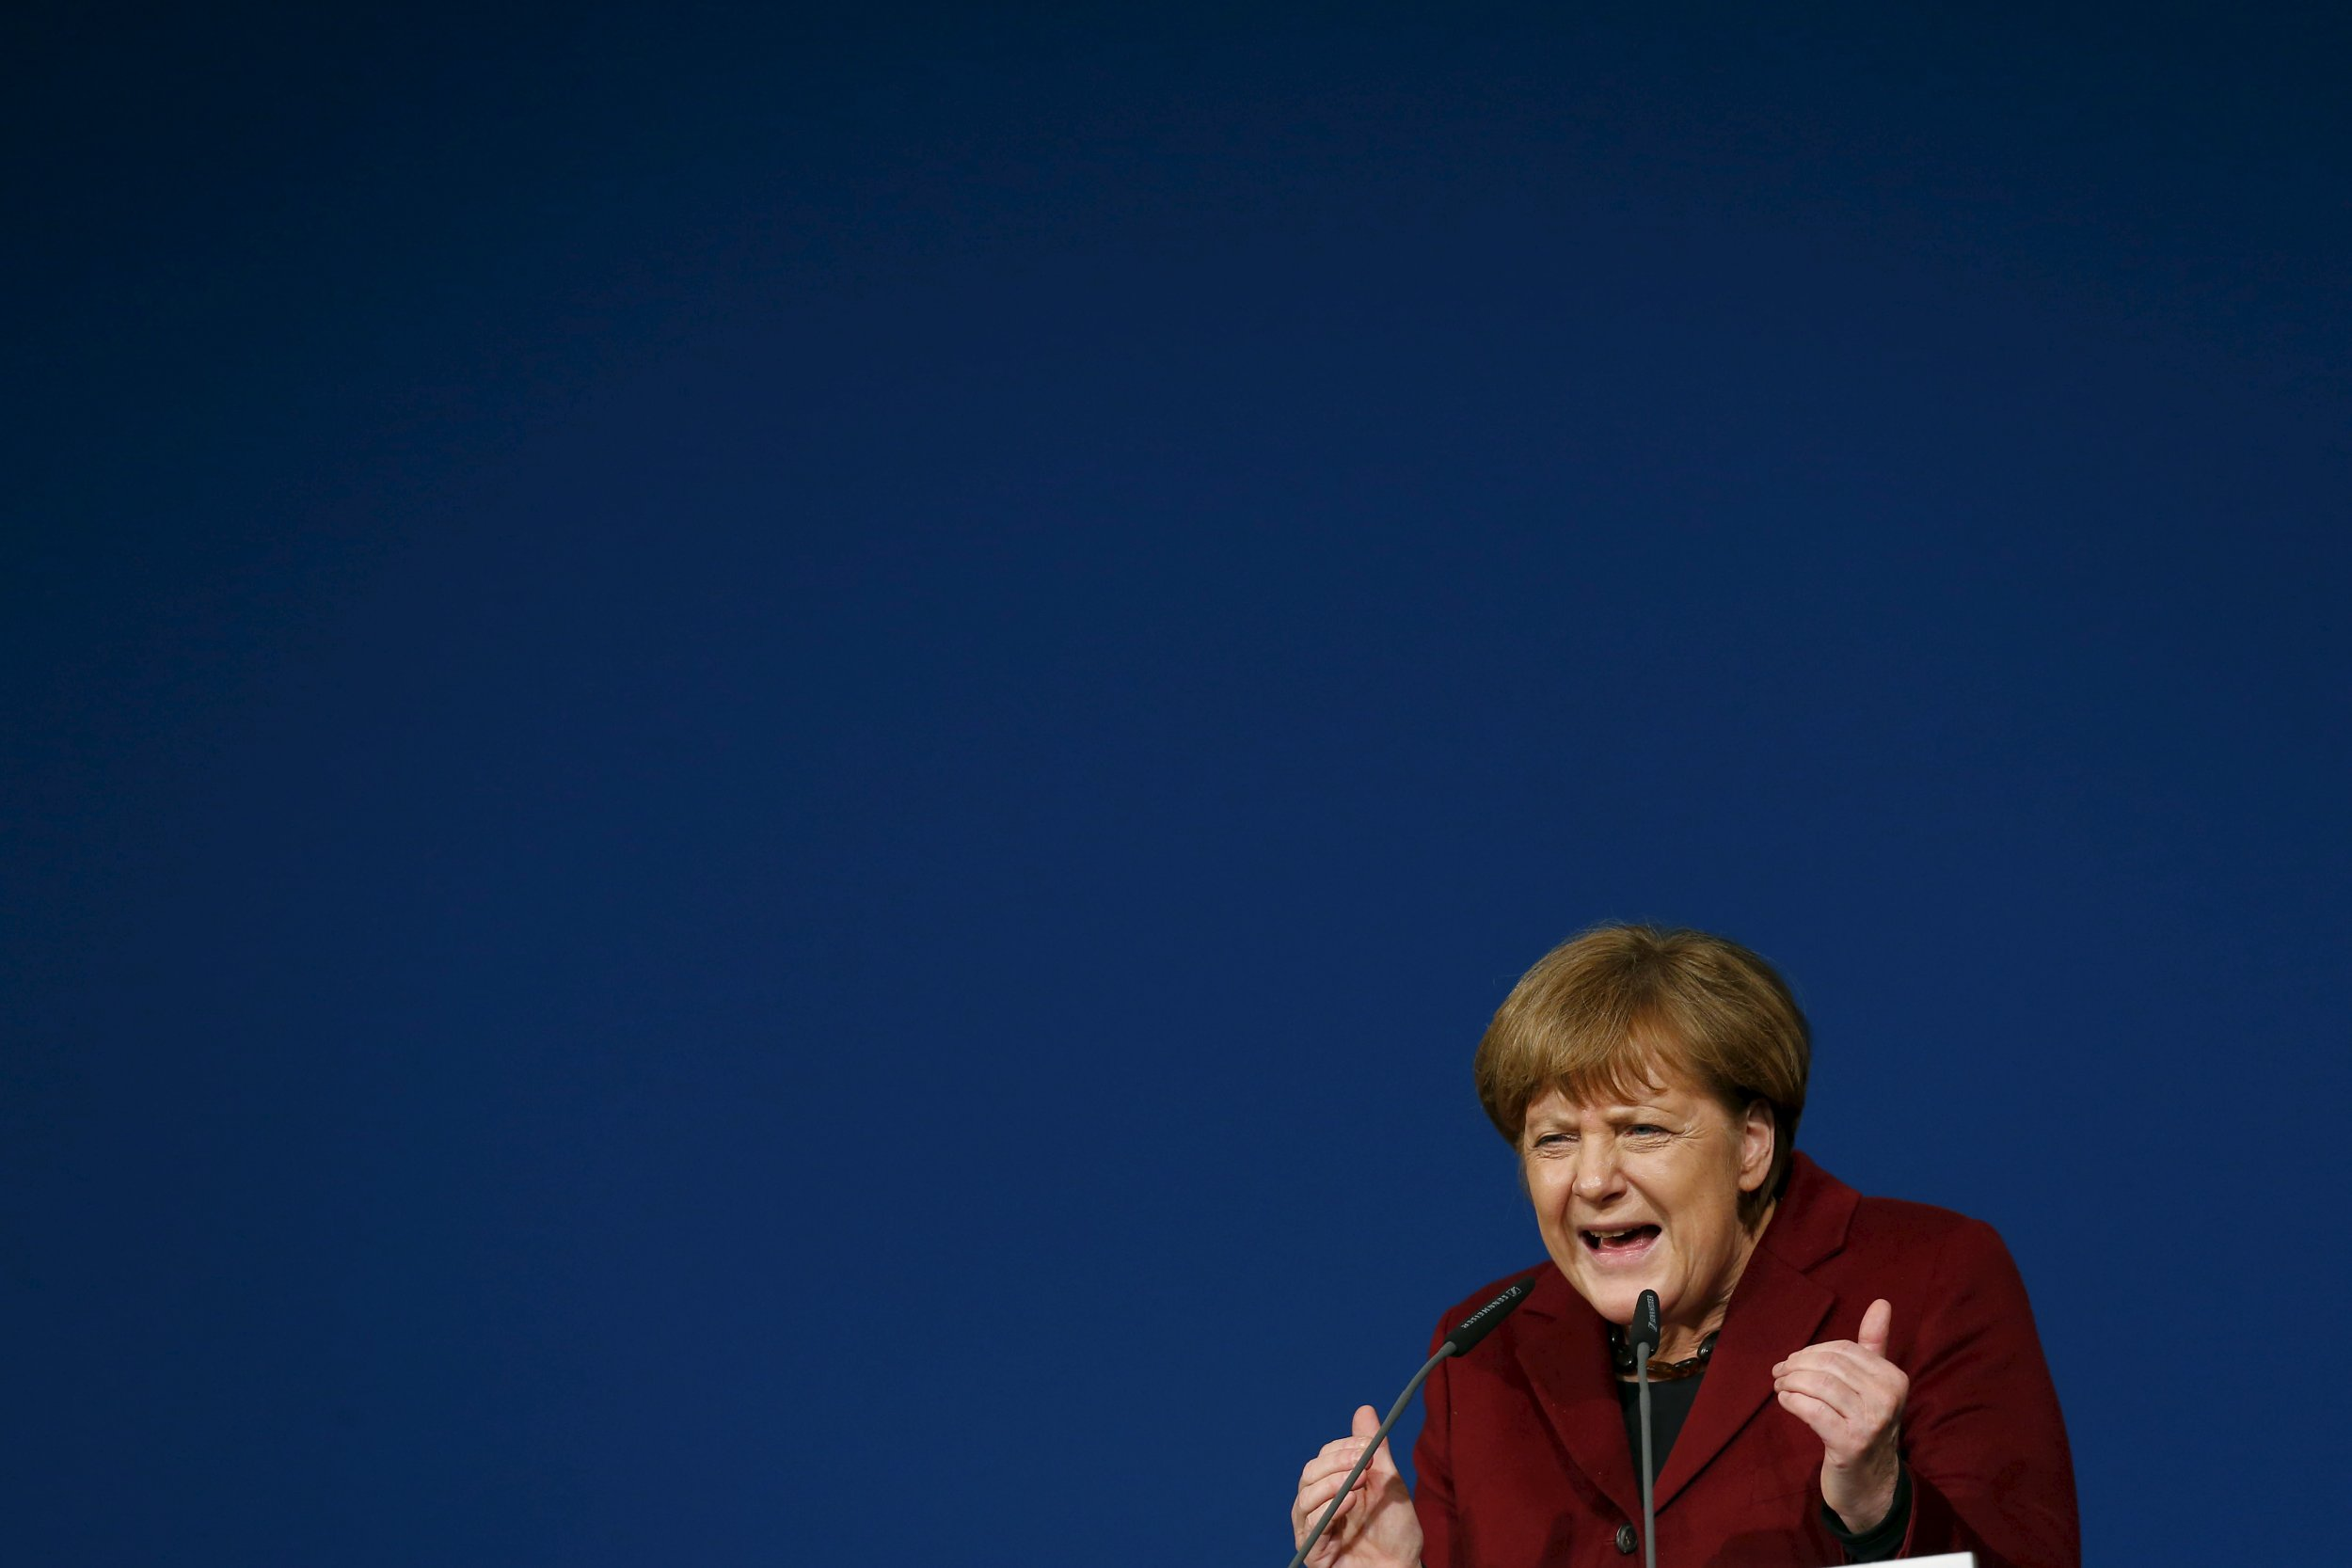 02_24_Merkel_Isolated_01